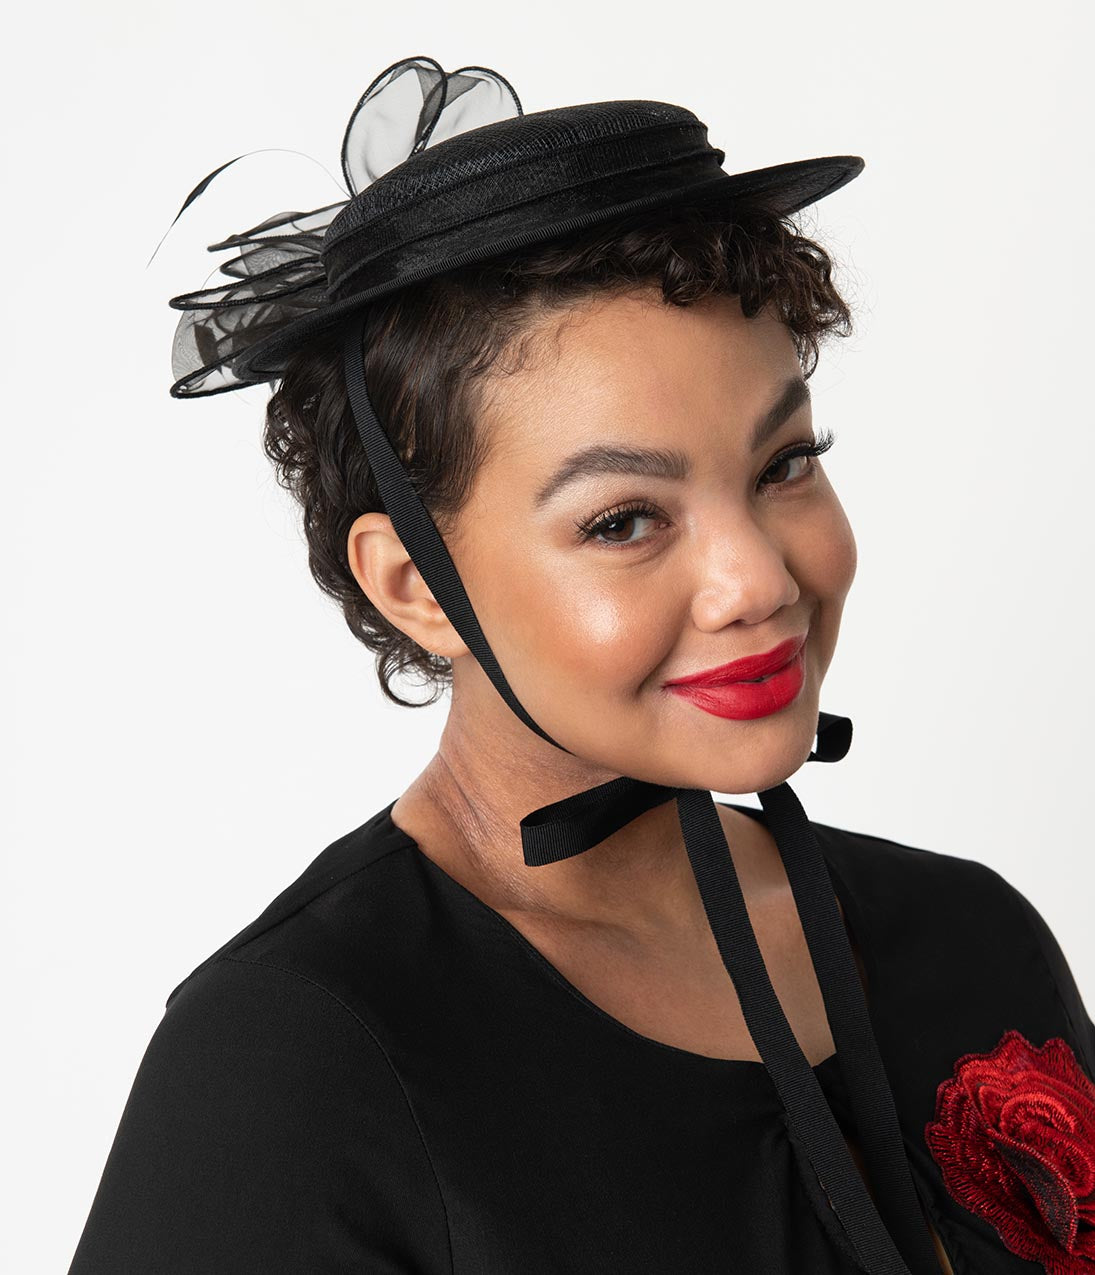 1940s Hats History Vintage Style Black Sinamay Ribbon Disc Fascinator $48.00 AT vintagedancer.com